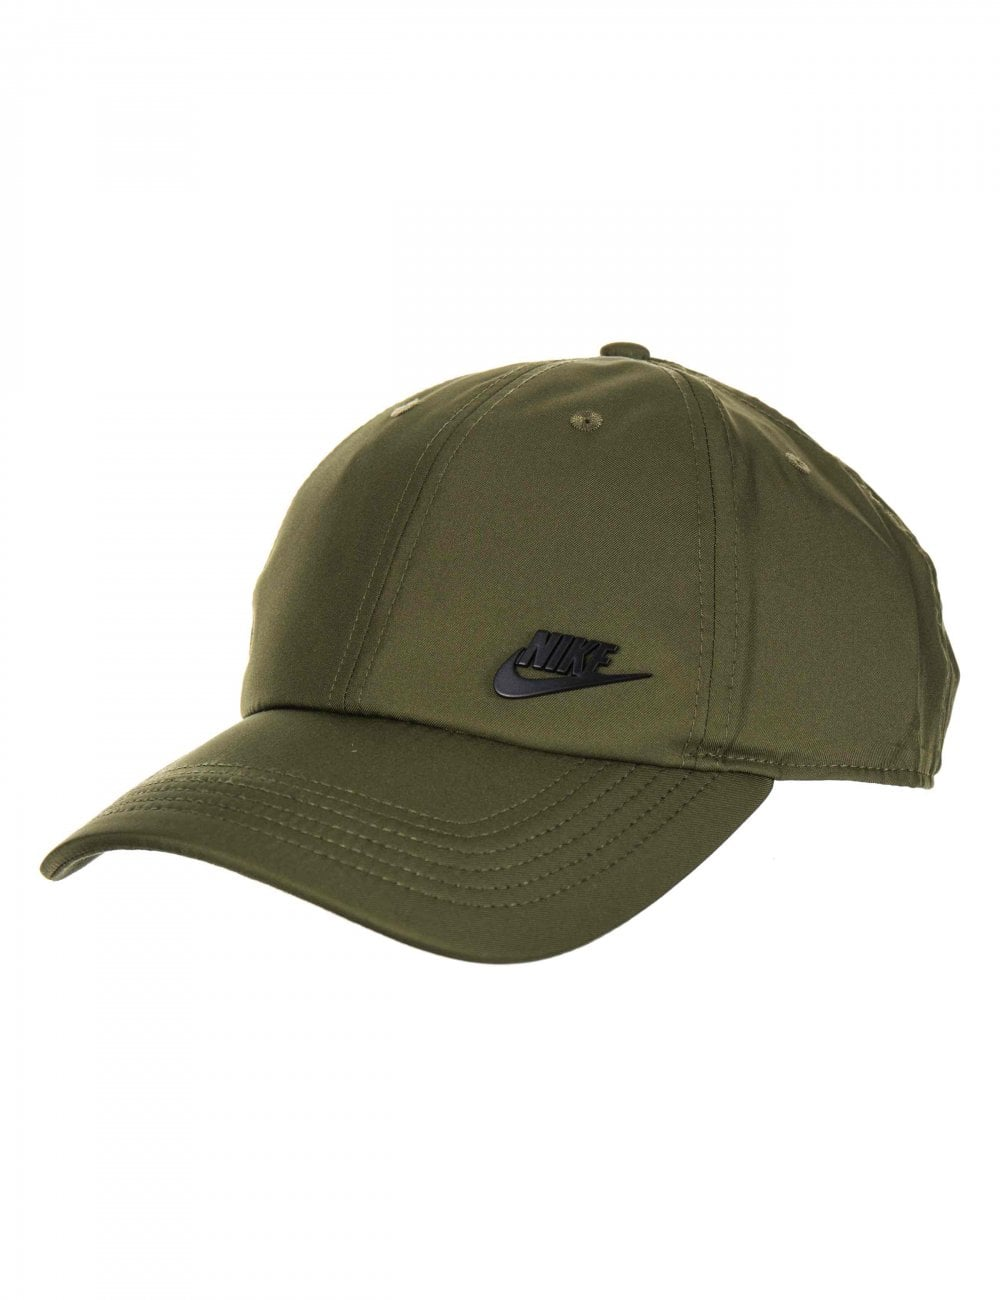 Nike Futura Heritage 86 Aerobill Hat - Olive - Hat Shop from Fat ... d6168628467b